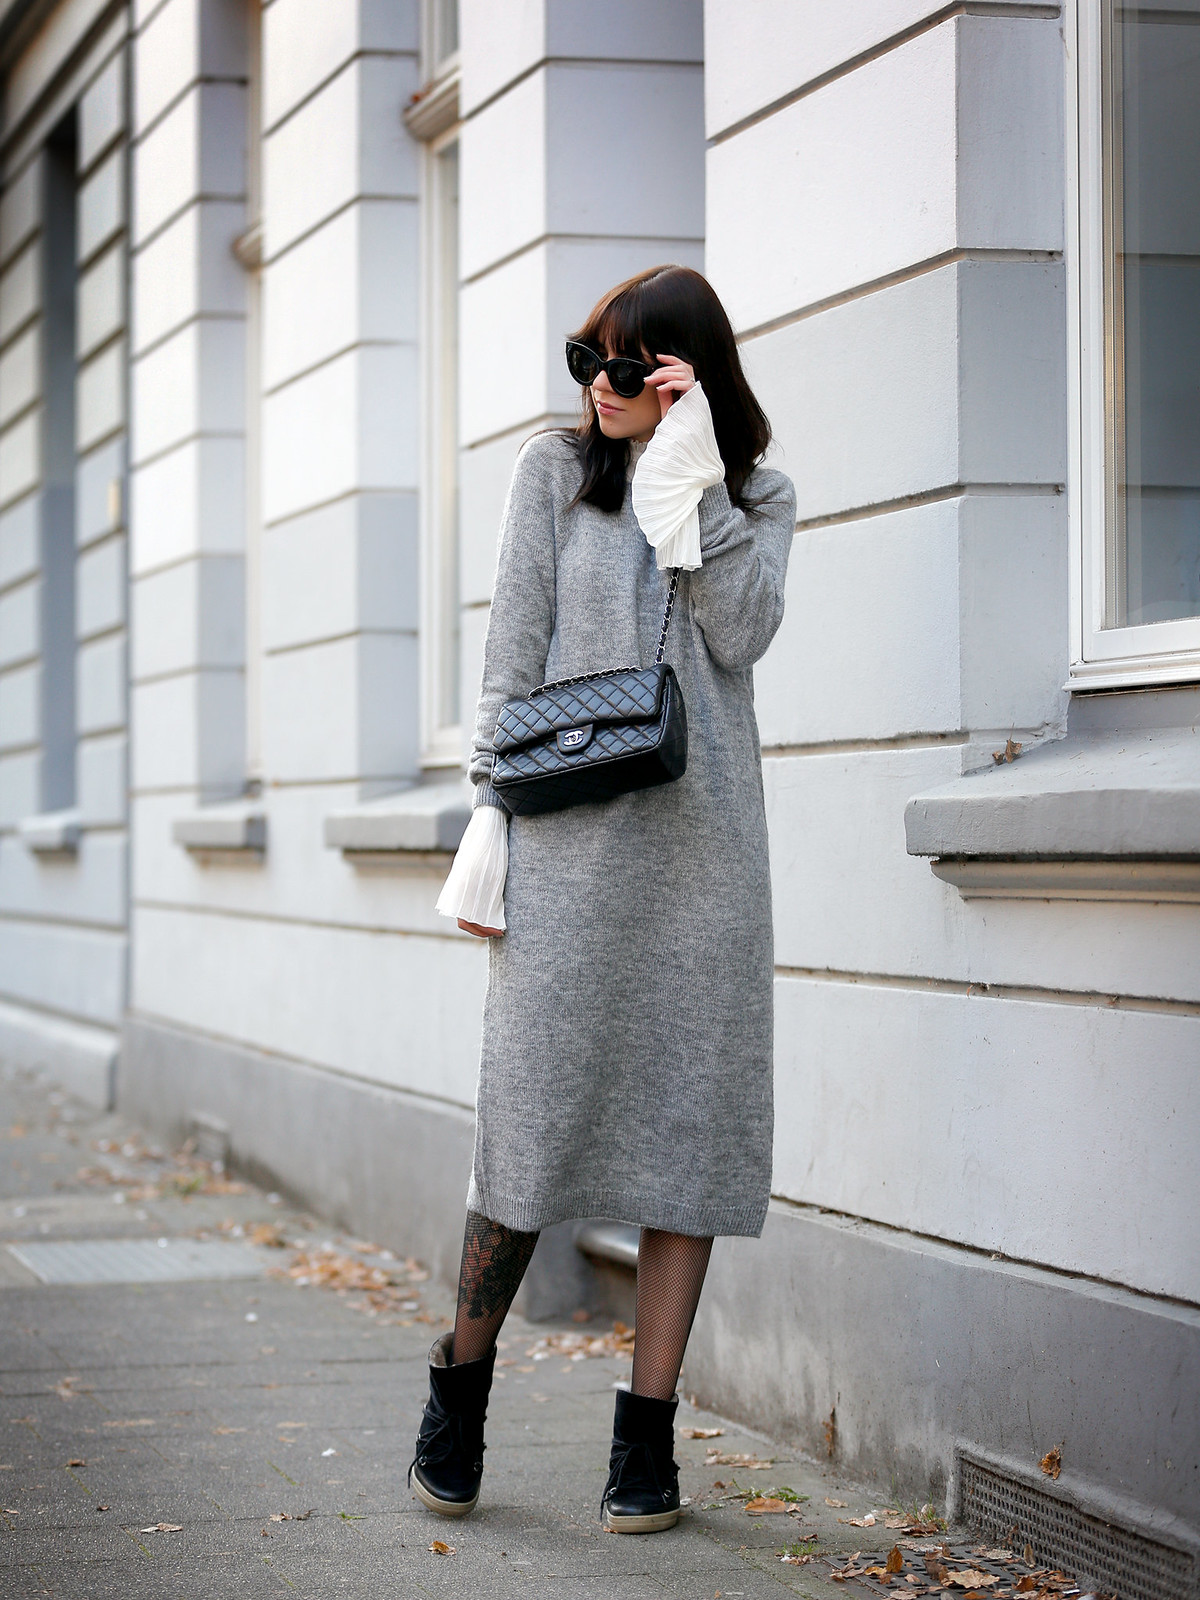 outfit h&m grey maxi knit dress bell sleeves hippie chanel 2.55 classic luxury bag black silver hardware sacha boots winter isabel marant étoile ootd fashionblogger ricarda schernus cats & dogs 7